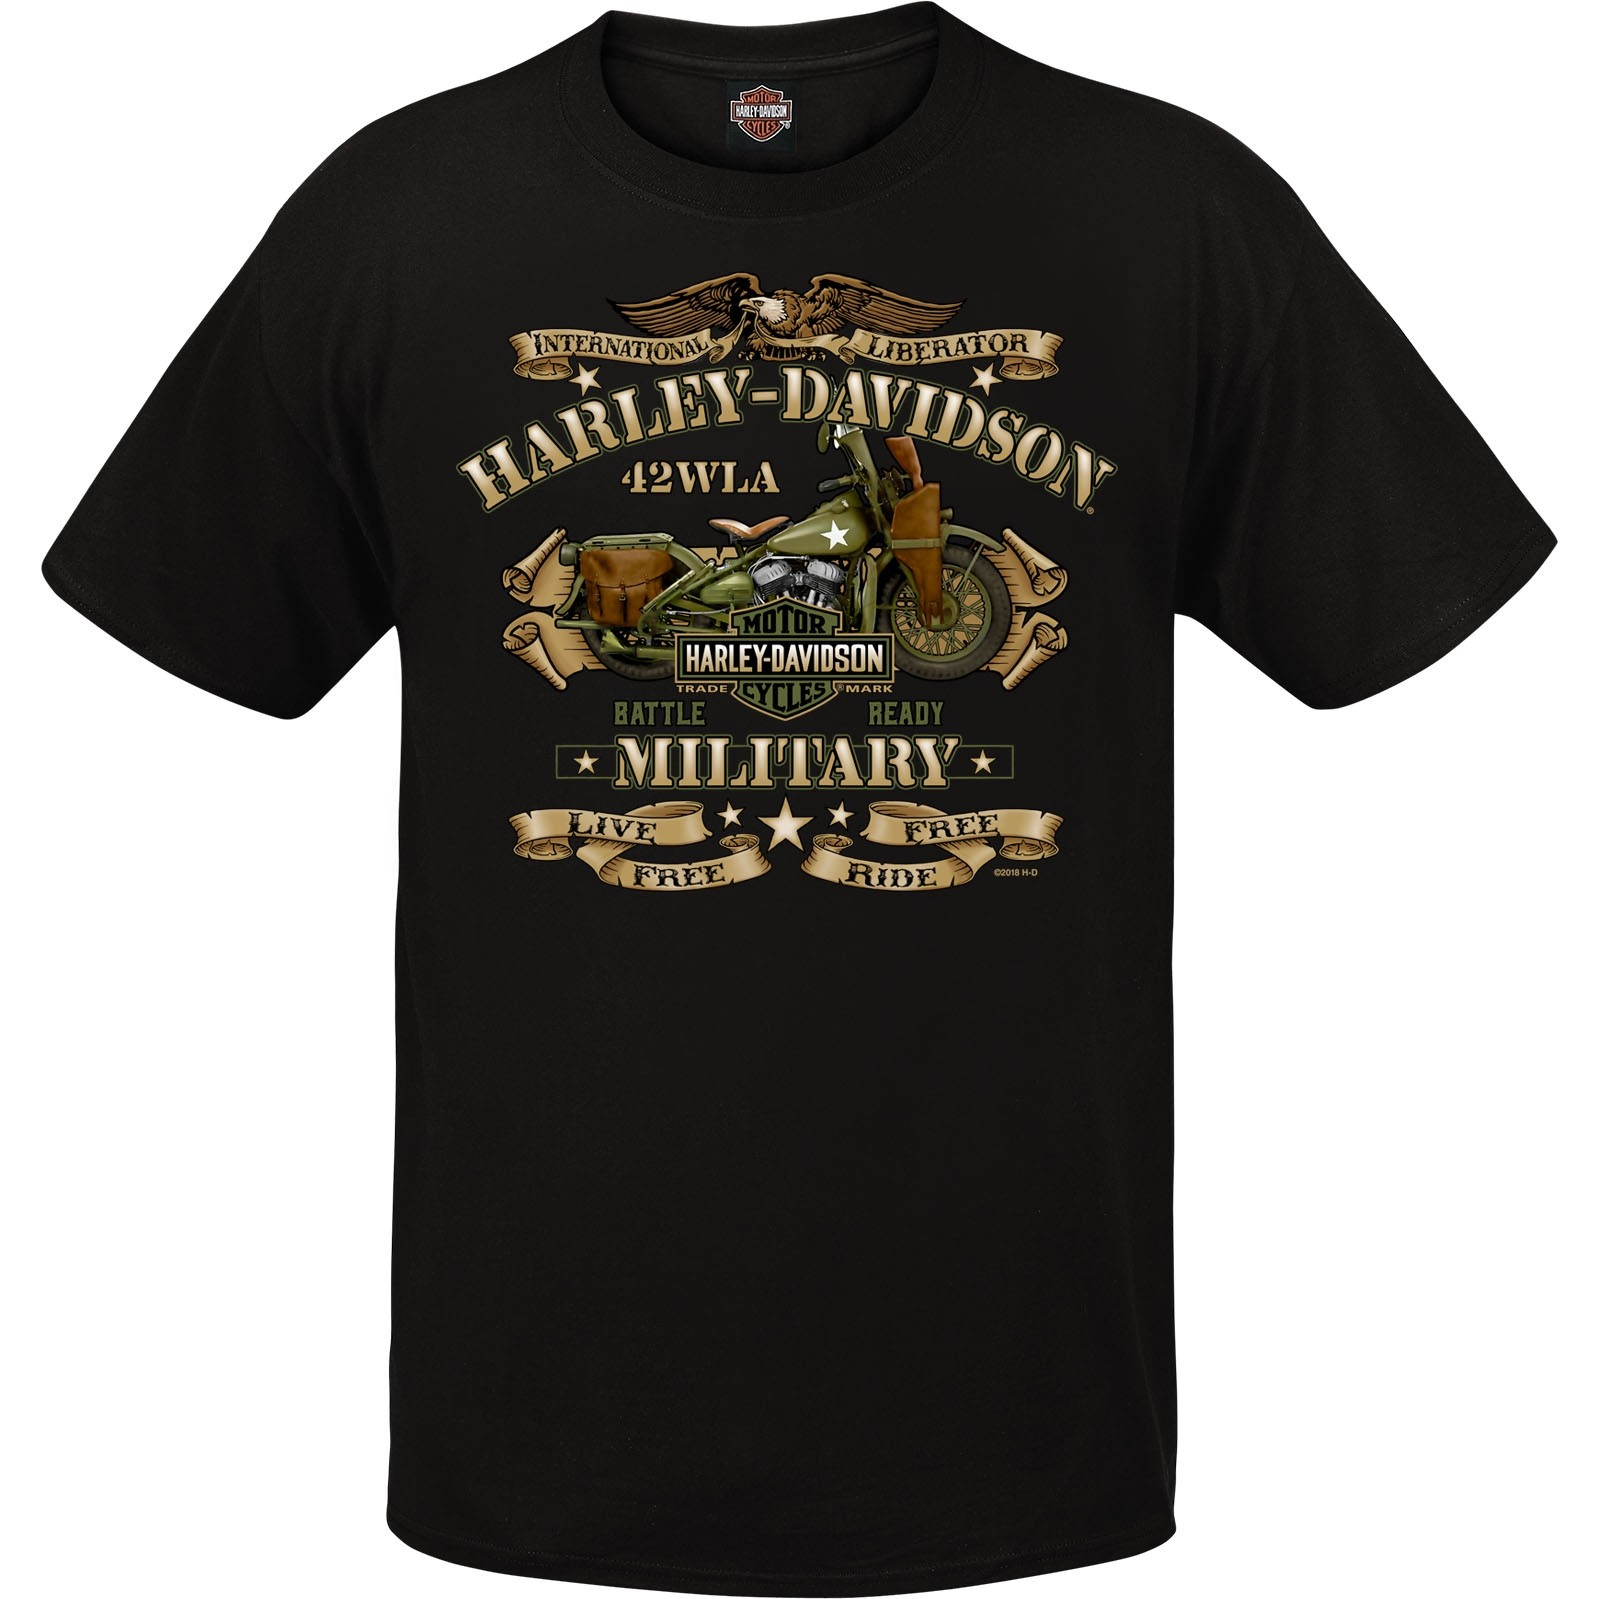 Harley-Davidson Military Men's Graphic T-shirt - Overseas Tour | War Bike